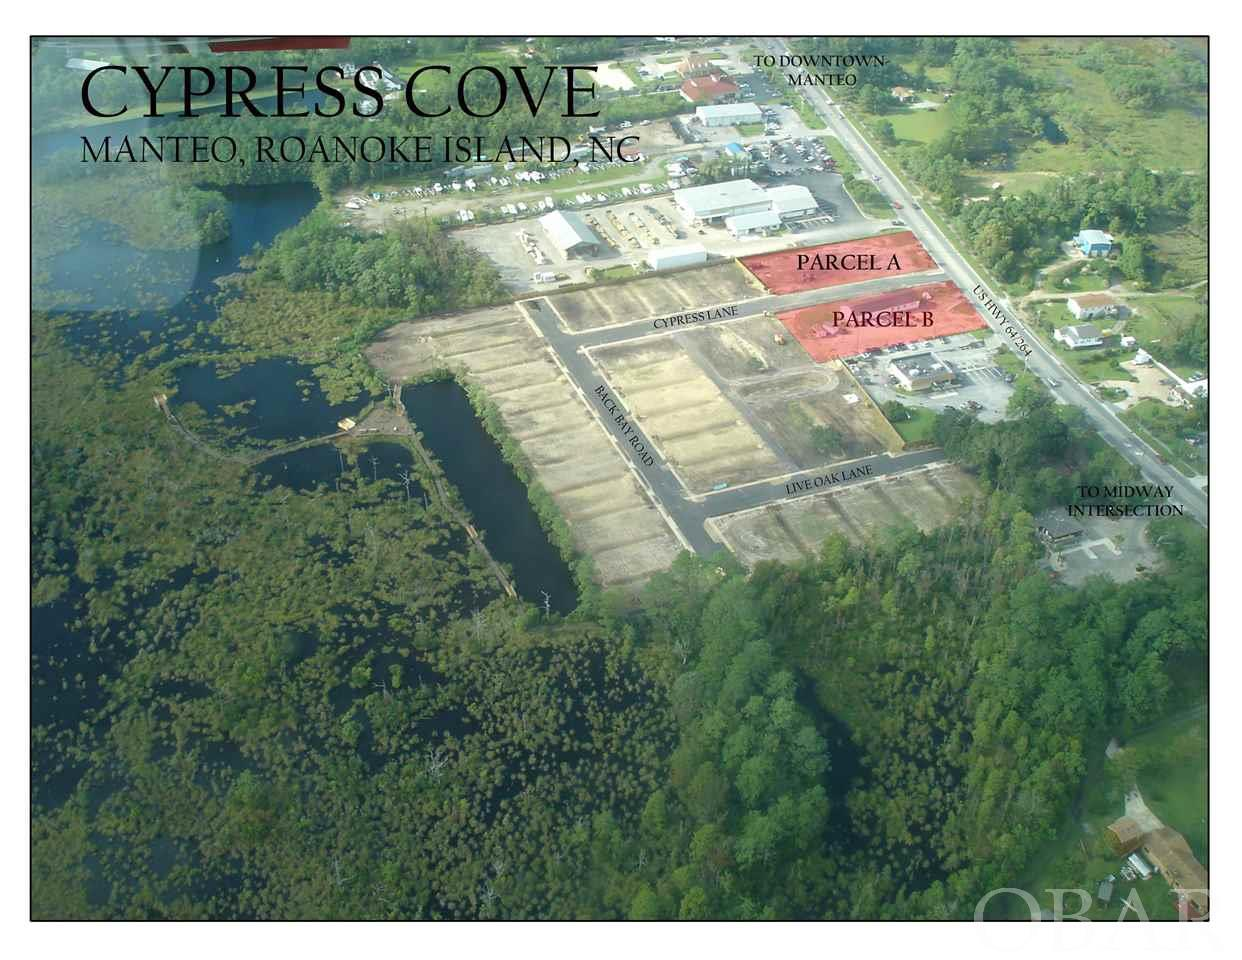 806 Highway 64/264, Manteo, NC 27954, ,Lots/land,For sale,Highway 64/264,105368